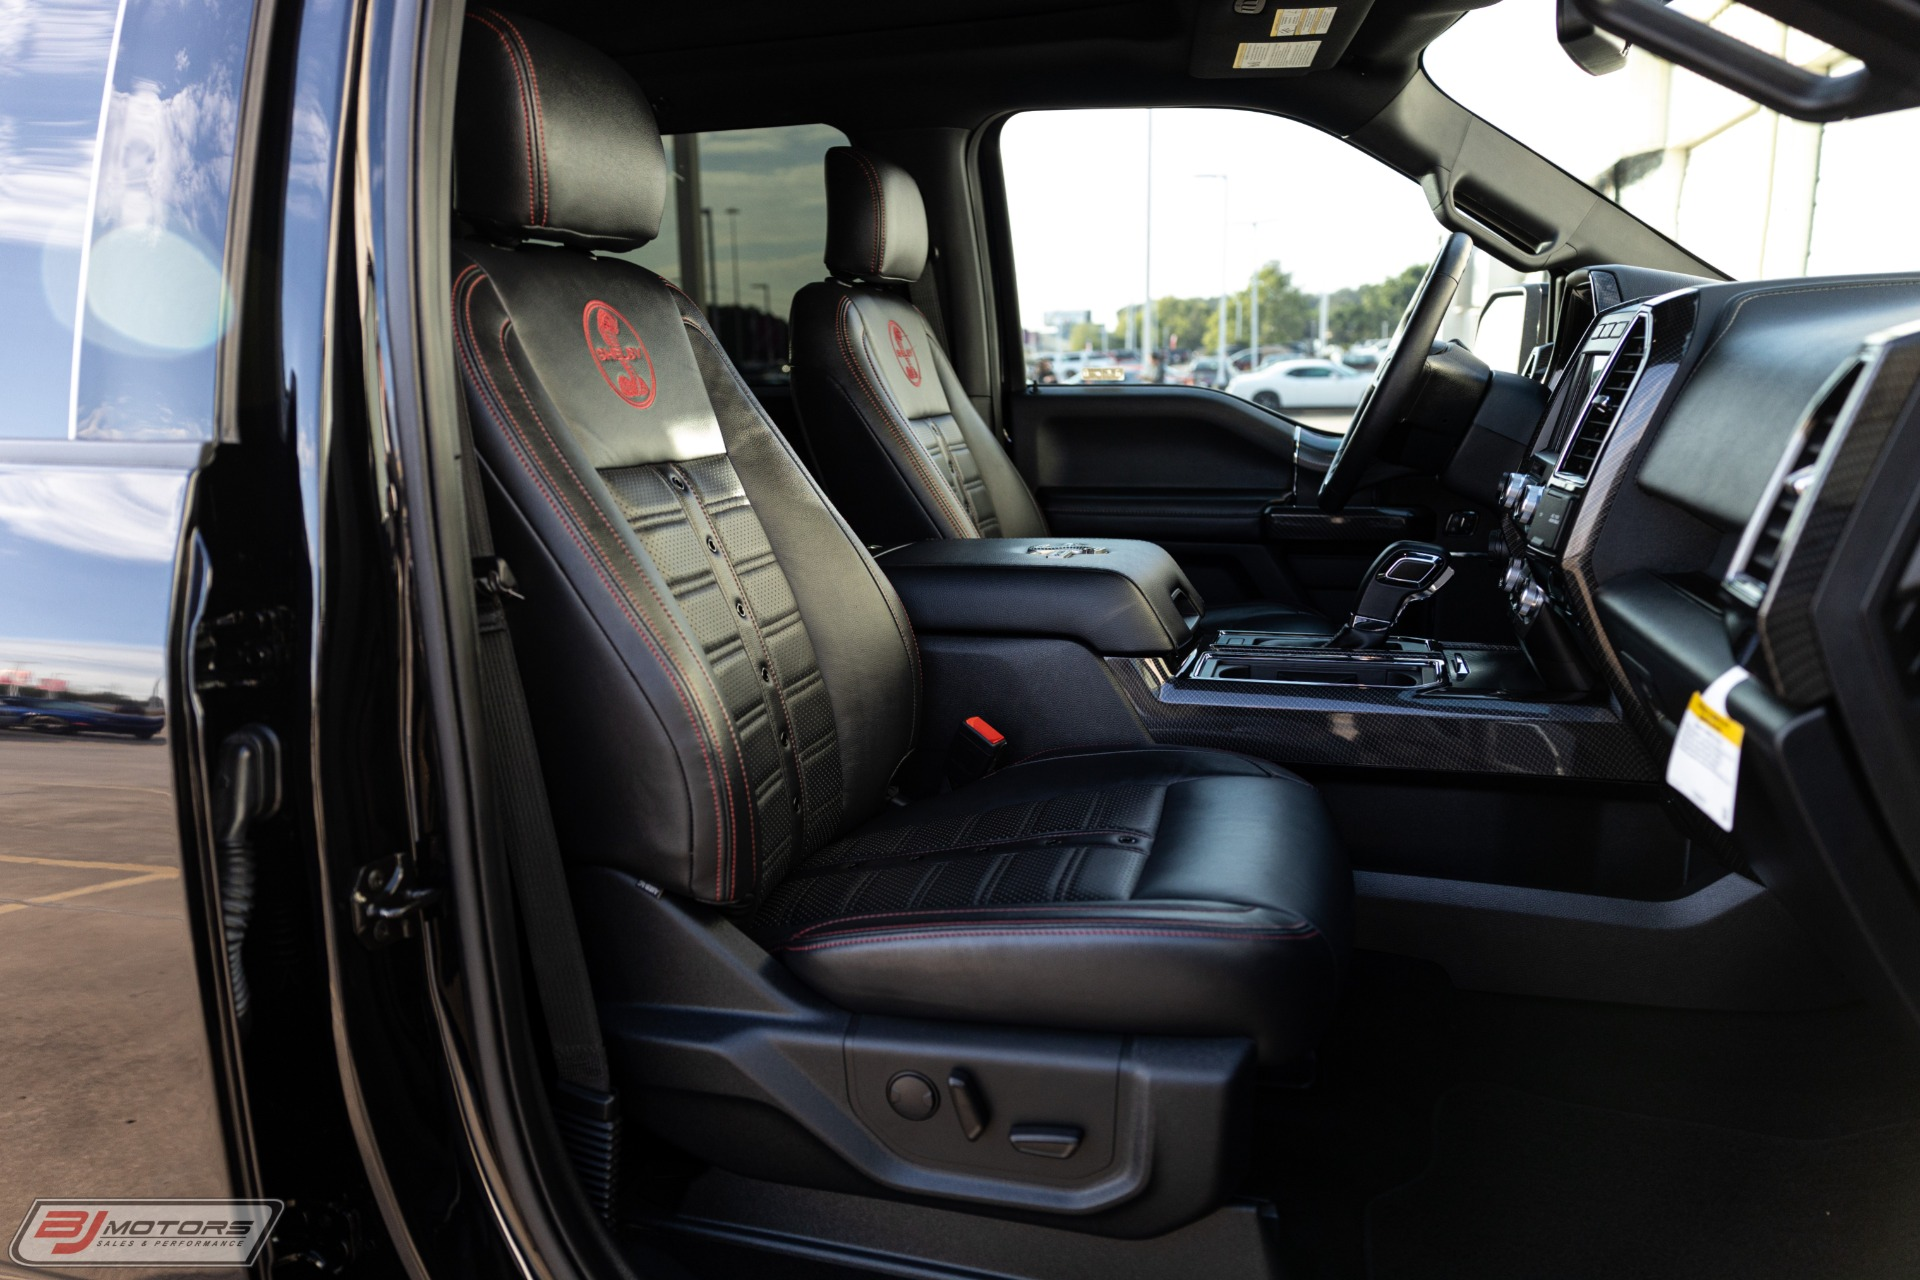 Used-2019-Ford-F-150-Shelby-Supercharged-755HP